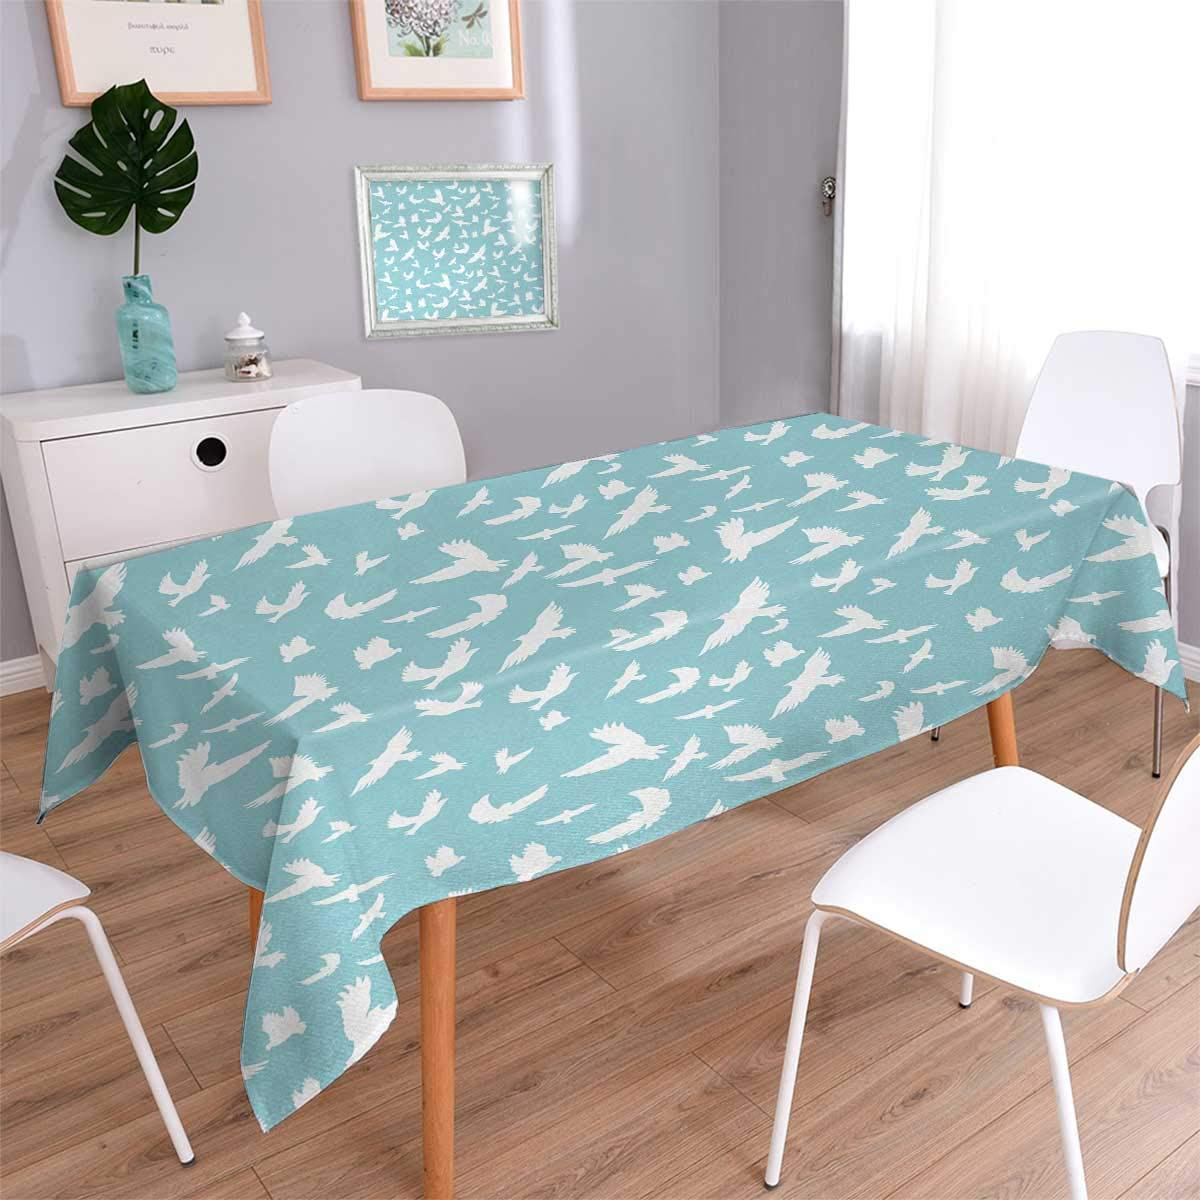 Blue Oblong Rectangular Tablecloth Flying Birds Open Wings Silhouettes Clear Summer Sky Hovering Feathered Animals Oblong Wrinkle Resistant Tablecloth Light Blue White Size: W54'' x L72''